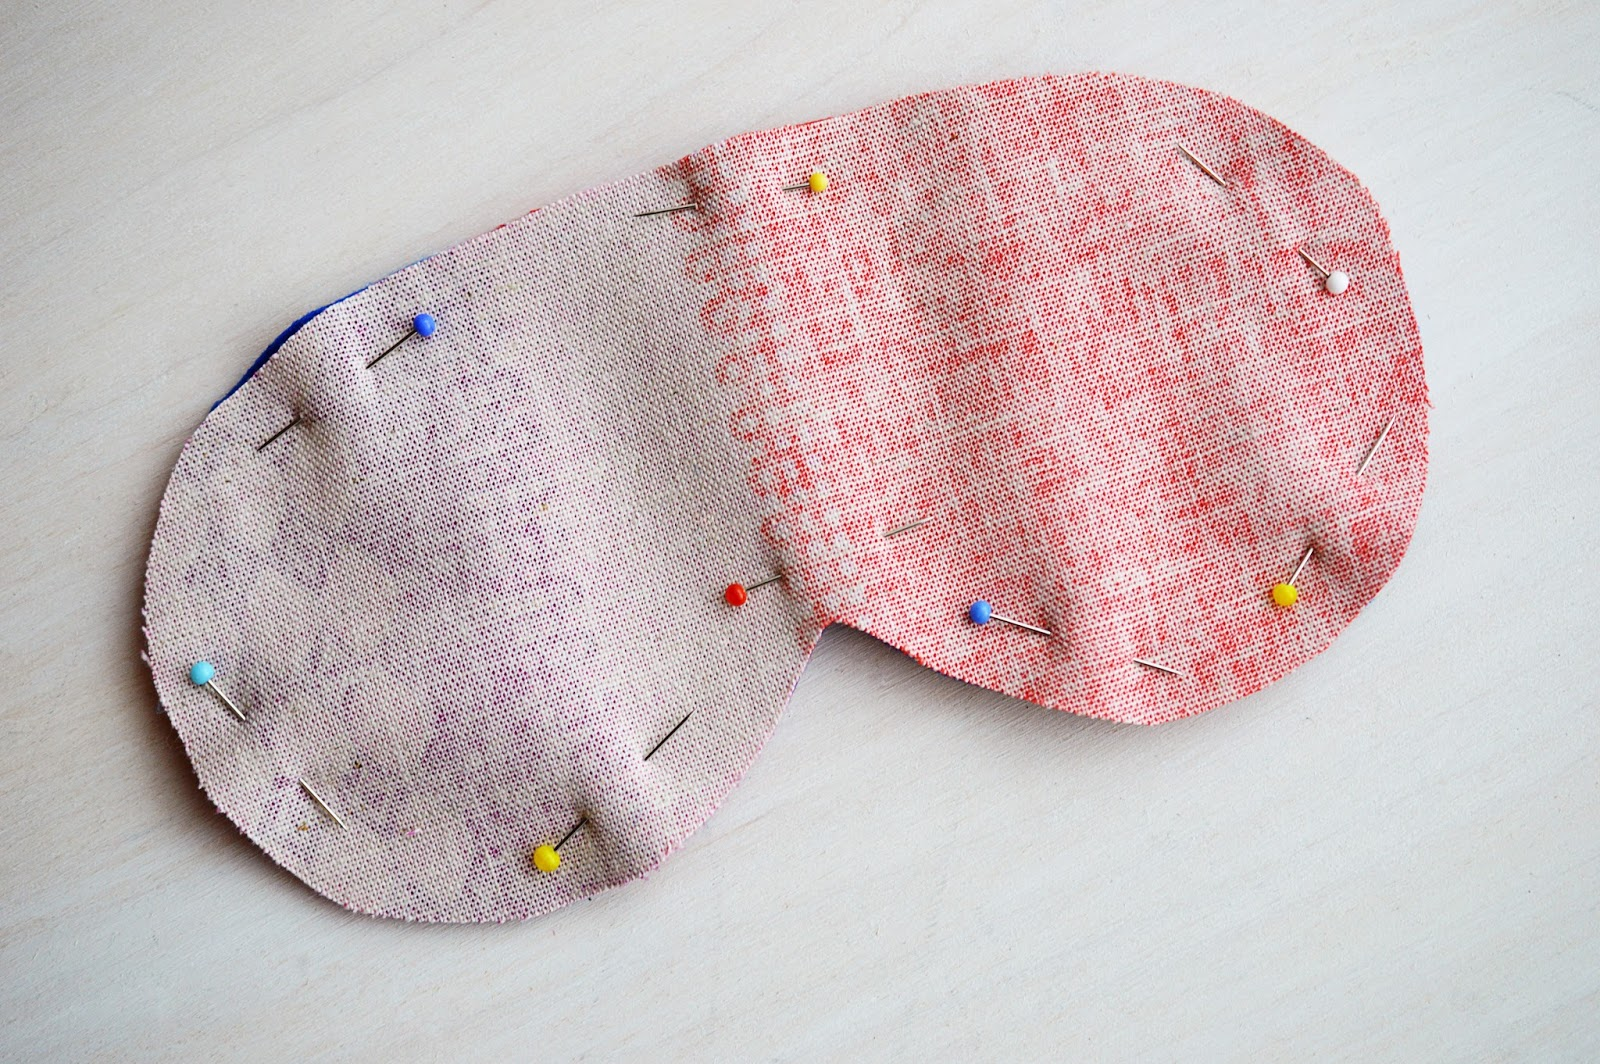 DIY Sleeping Mask | Motte's Blog